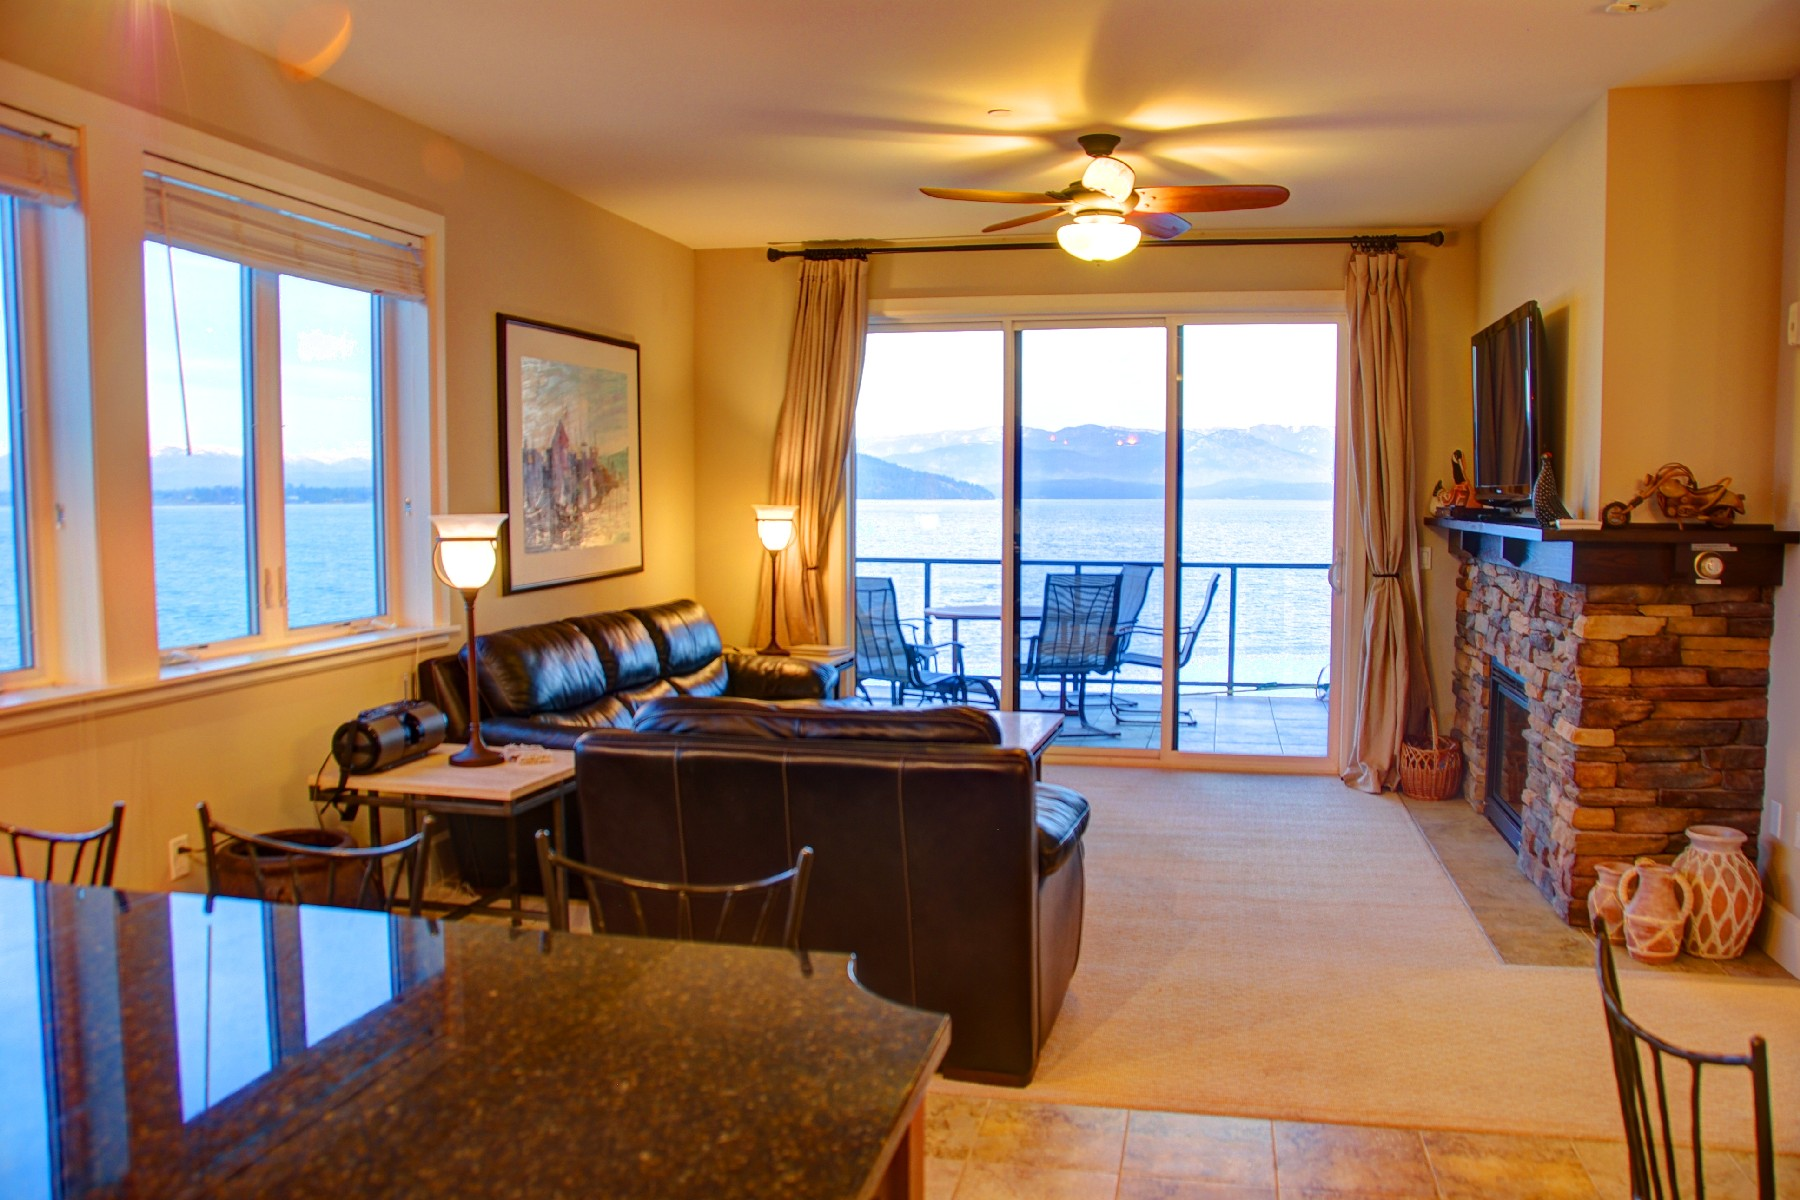 Single Family Home for Sale at Seasons at Sandpoint 702 Sandpoint Avenue 7211 Sandpoint, Idaho 83864 United States